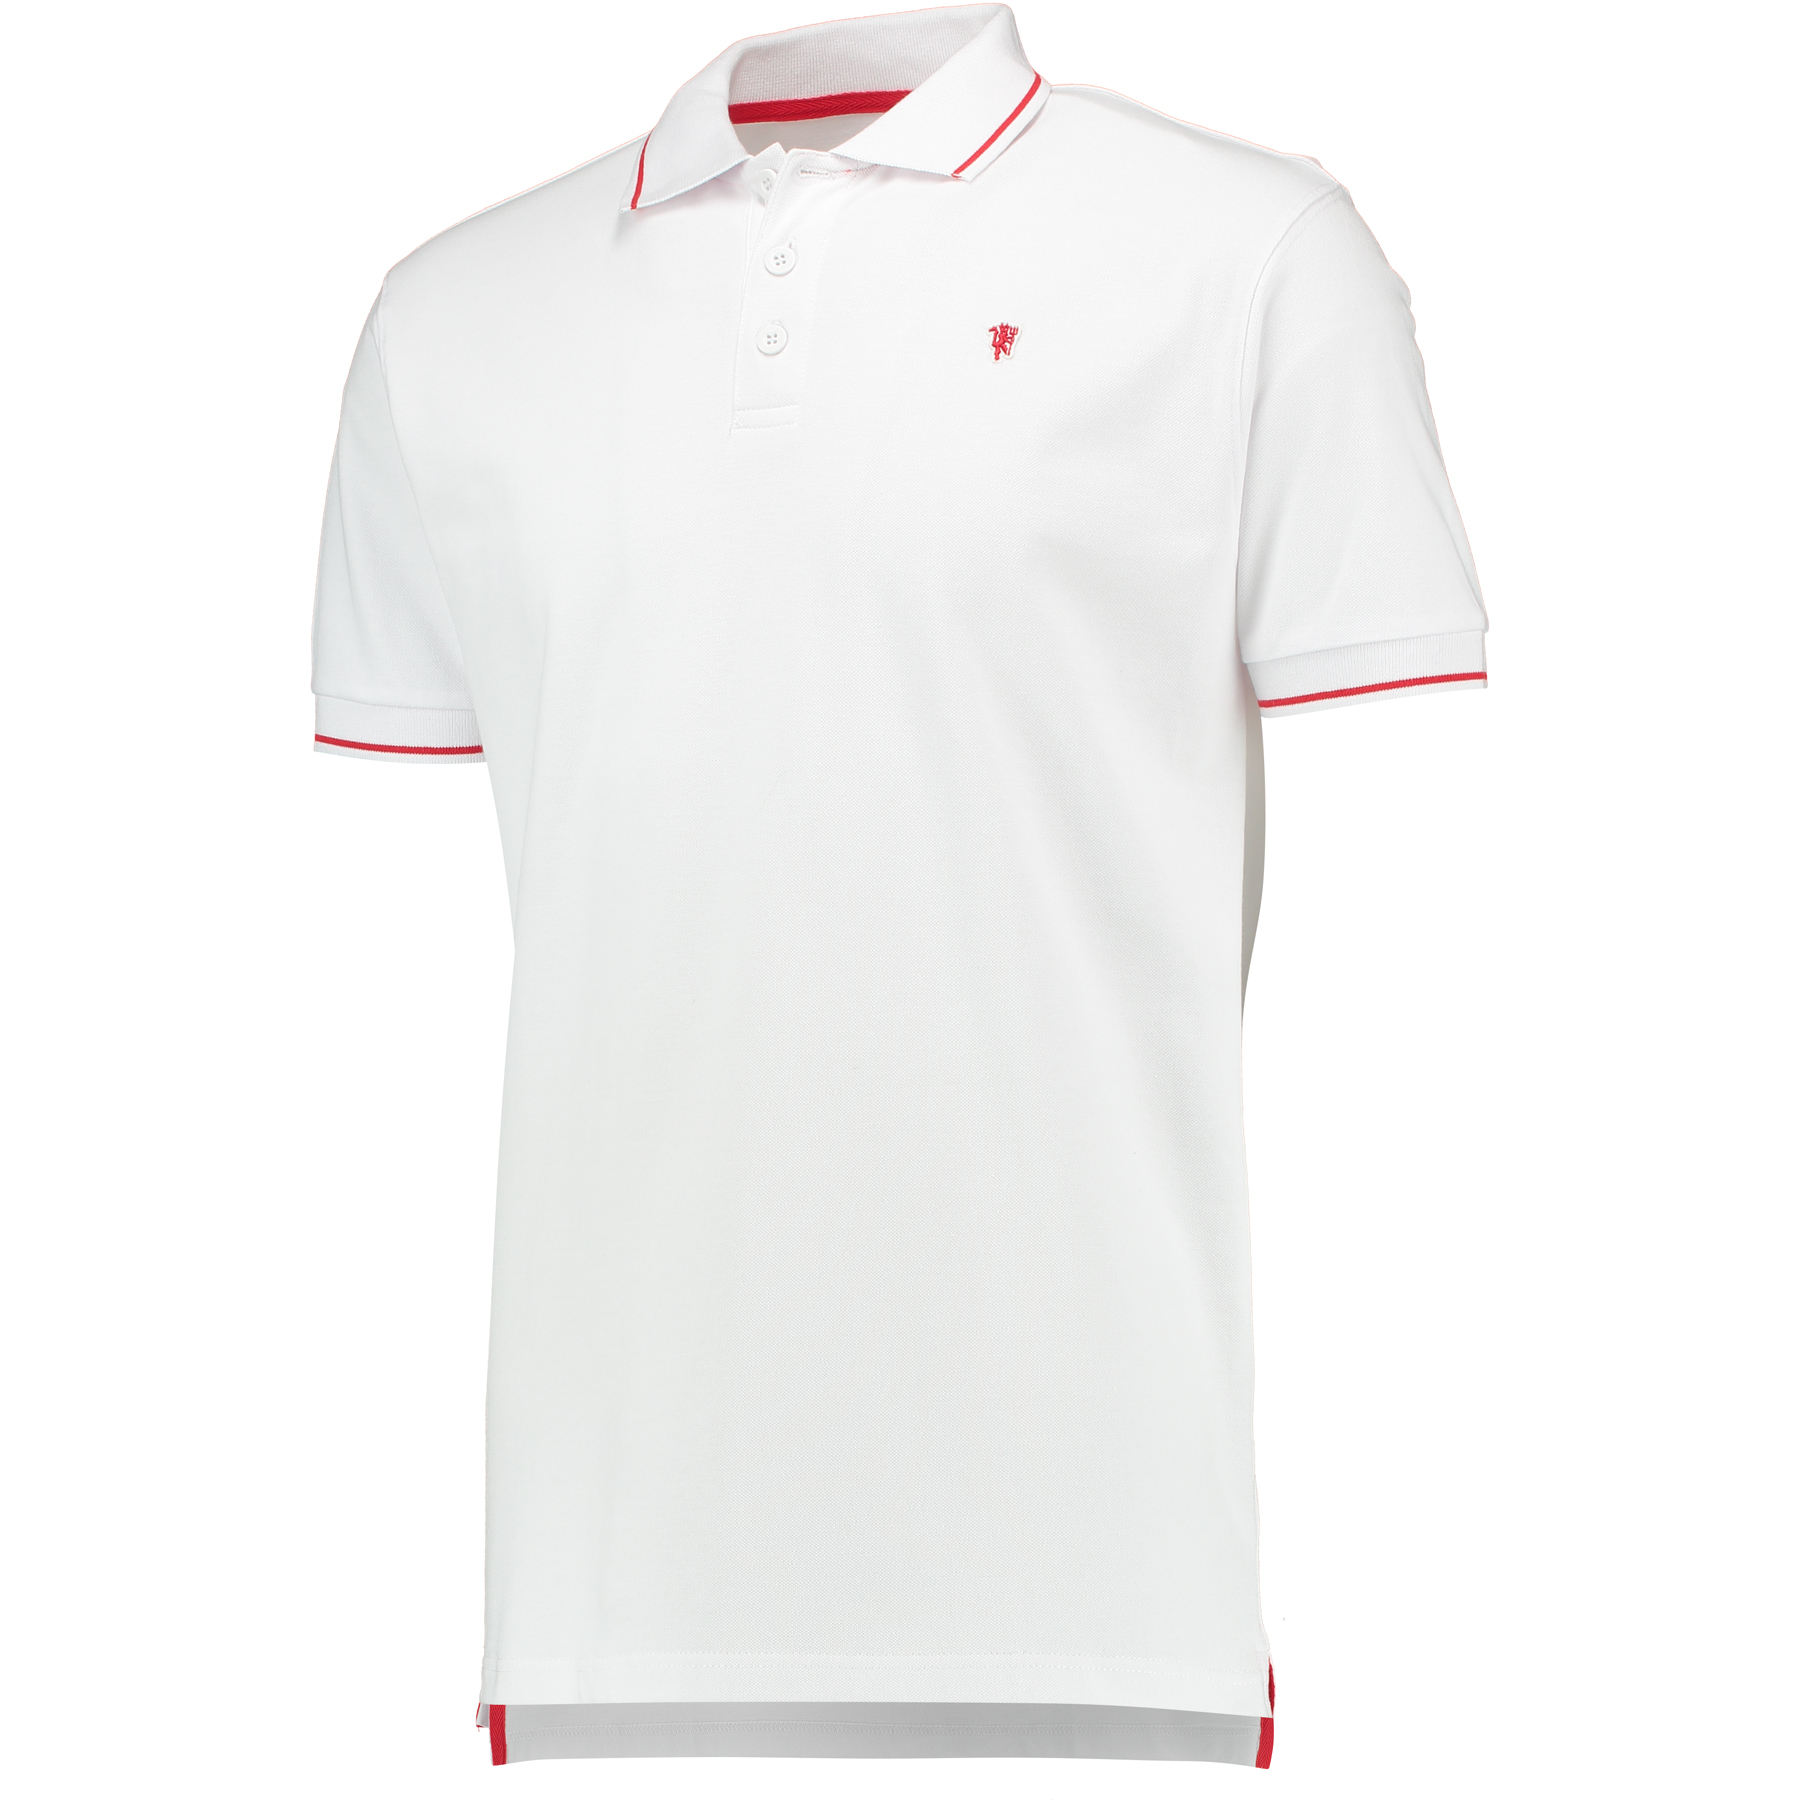 Manchester United Small Devil Polo Shirt - White - Mens